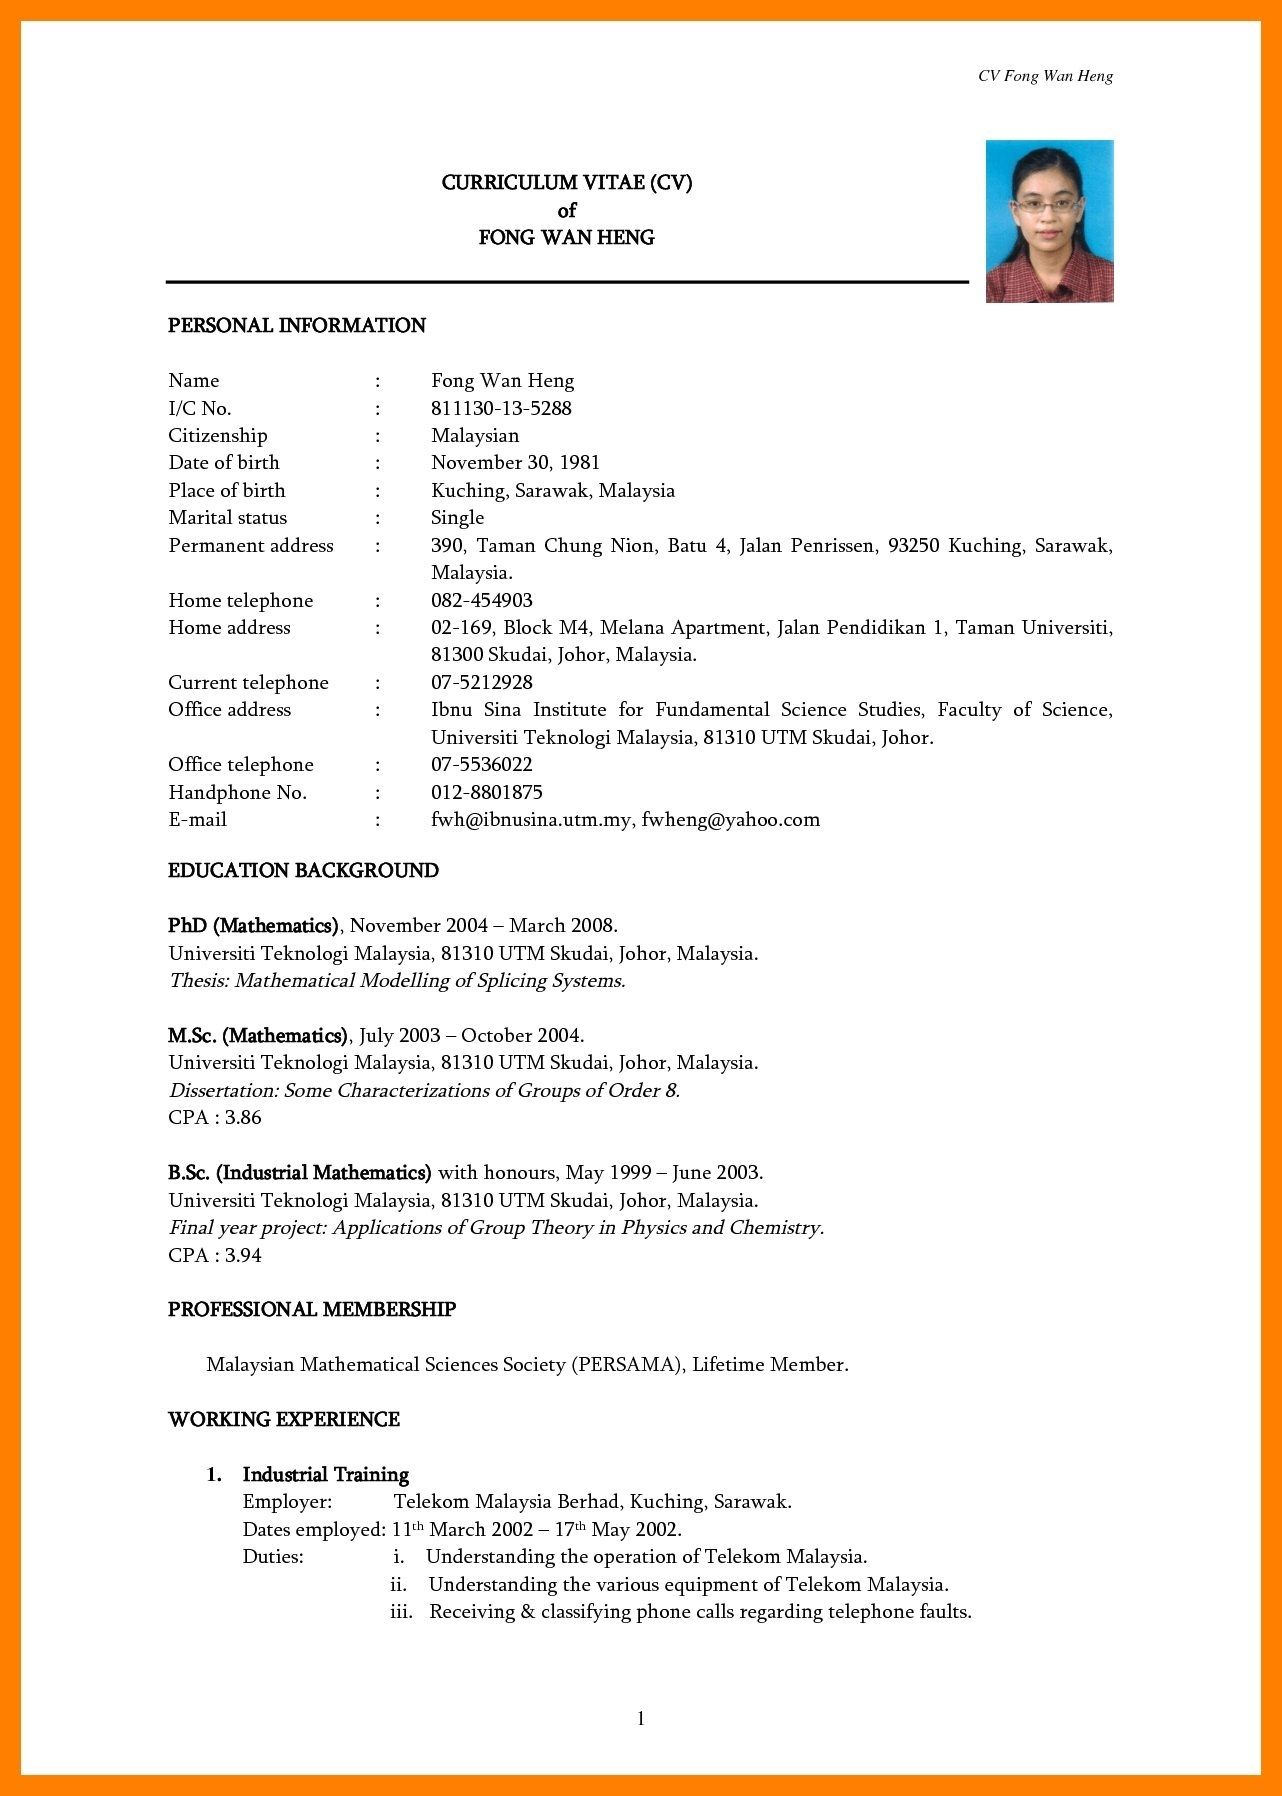 Simple Resume Template Malaysia Free Download With Simple Resume Format Free Download And Sim Basic Resume Free Resume Template Download Simple Resume Template